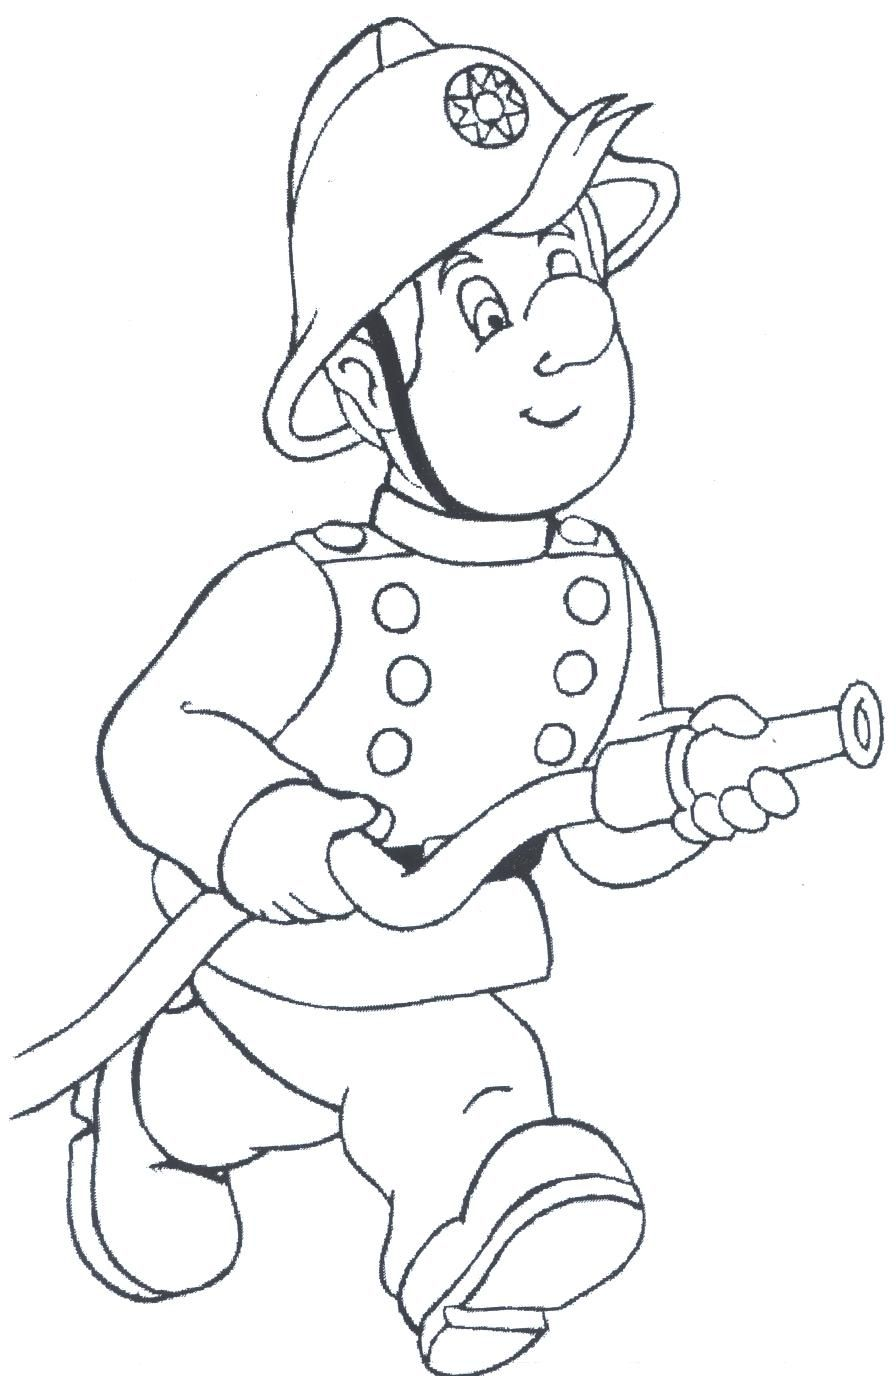 Firefighter Coloring Pages Free Large Images Coloring Pages Truck Coloring Pages Cartoon Coloring Pages